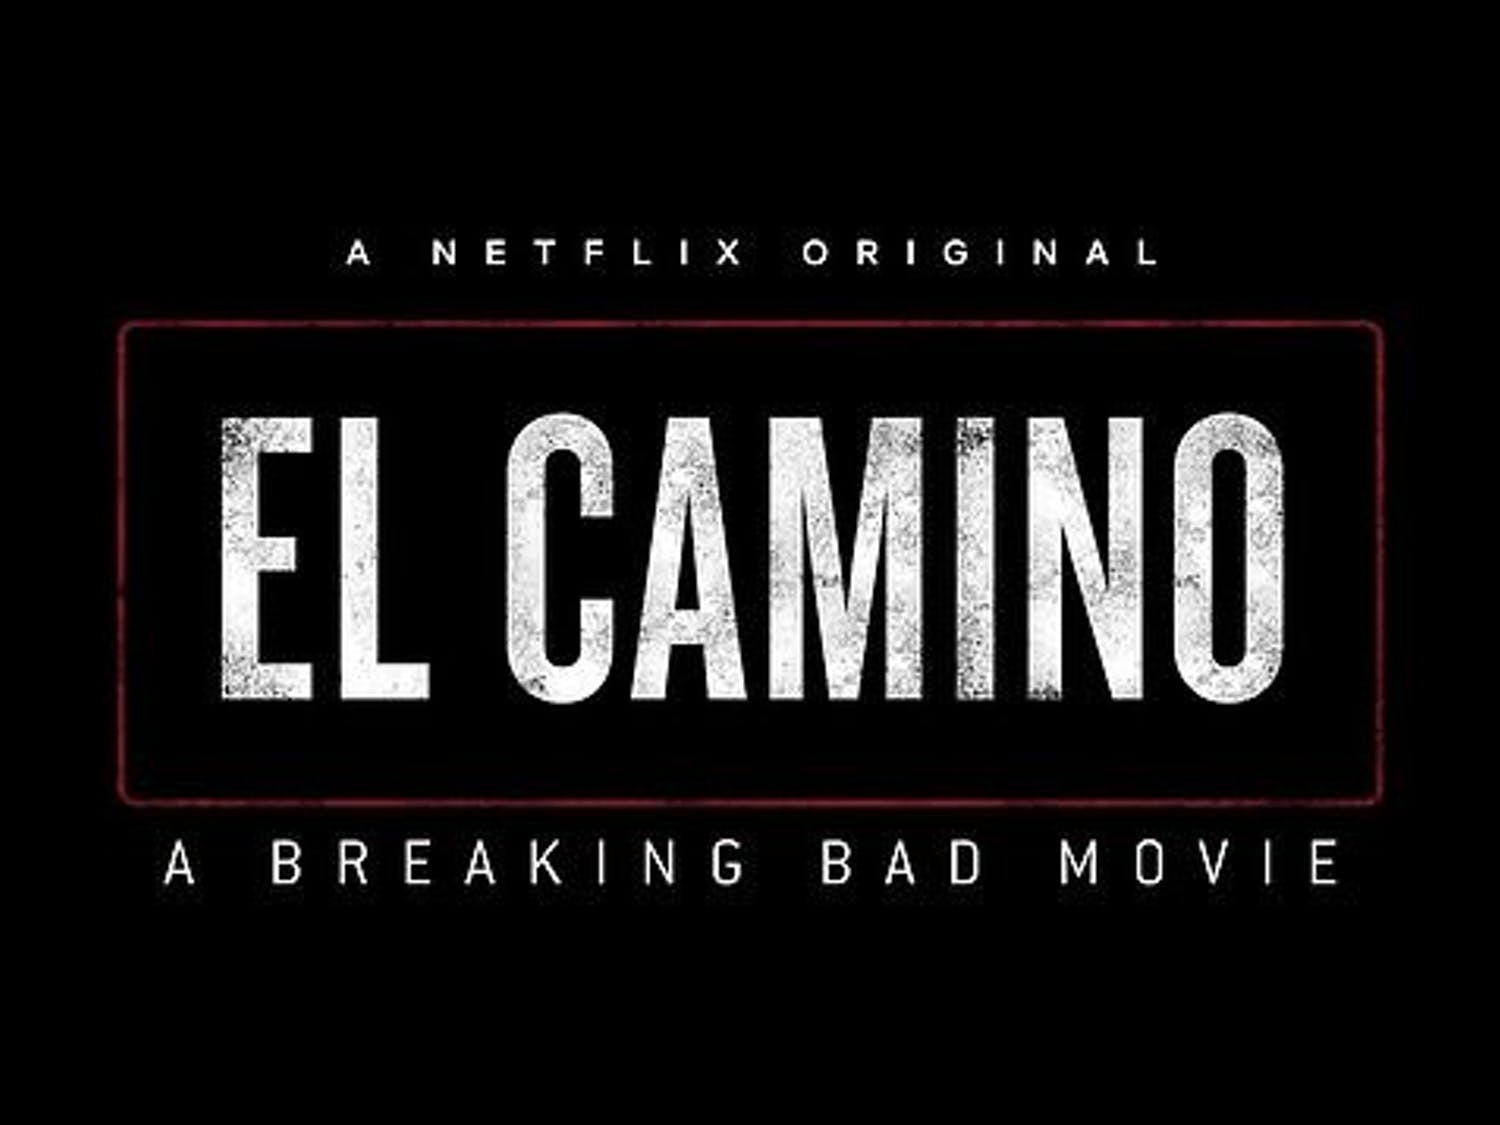 """El Camino: A Breaking Bad Movie"" takes a deep dive into Jesse Pinkman in the aftermath of the hit series but fails to set up anything new in this predictable epilogue."